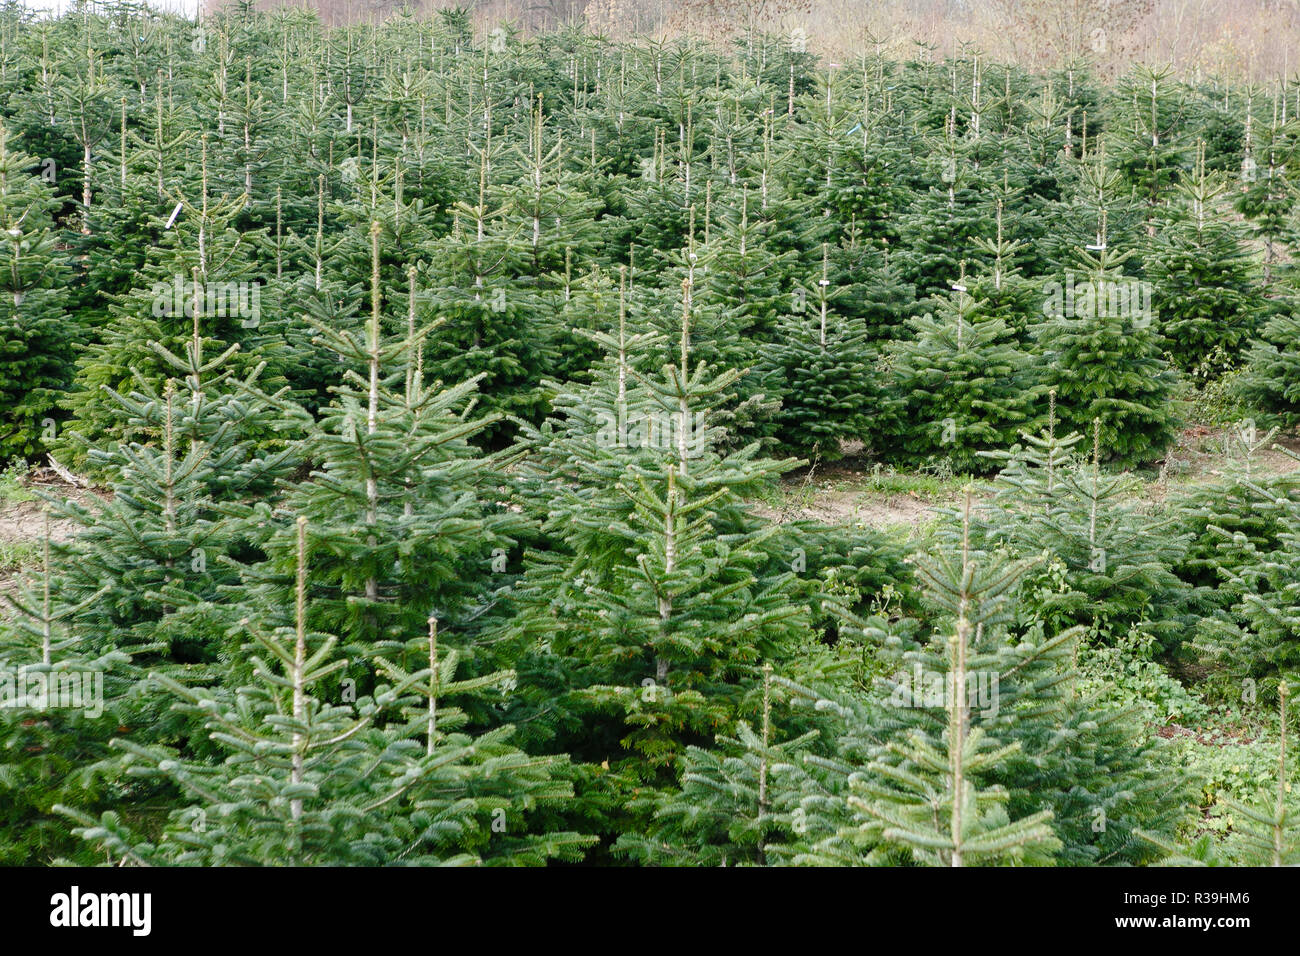 Christmas Tree Stand For Sale Damp Germany 21st Nov 2018 Christmas Trees Planted For Sale